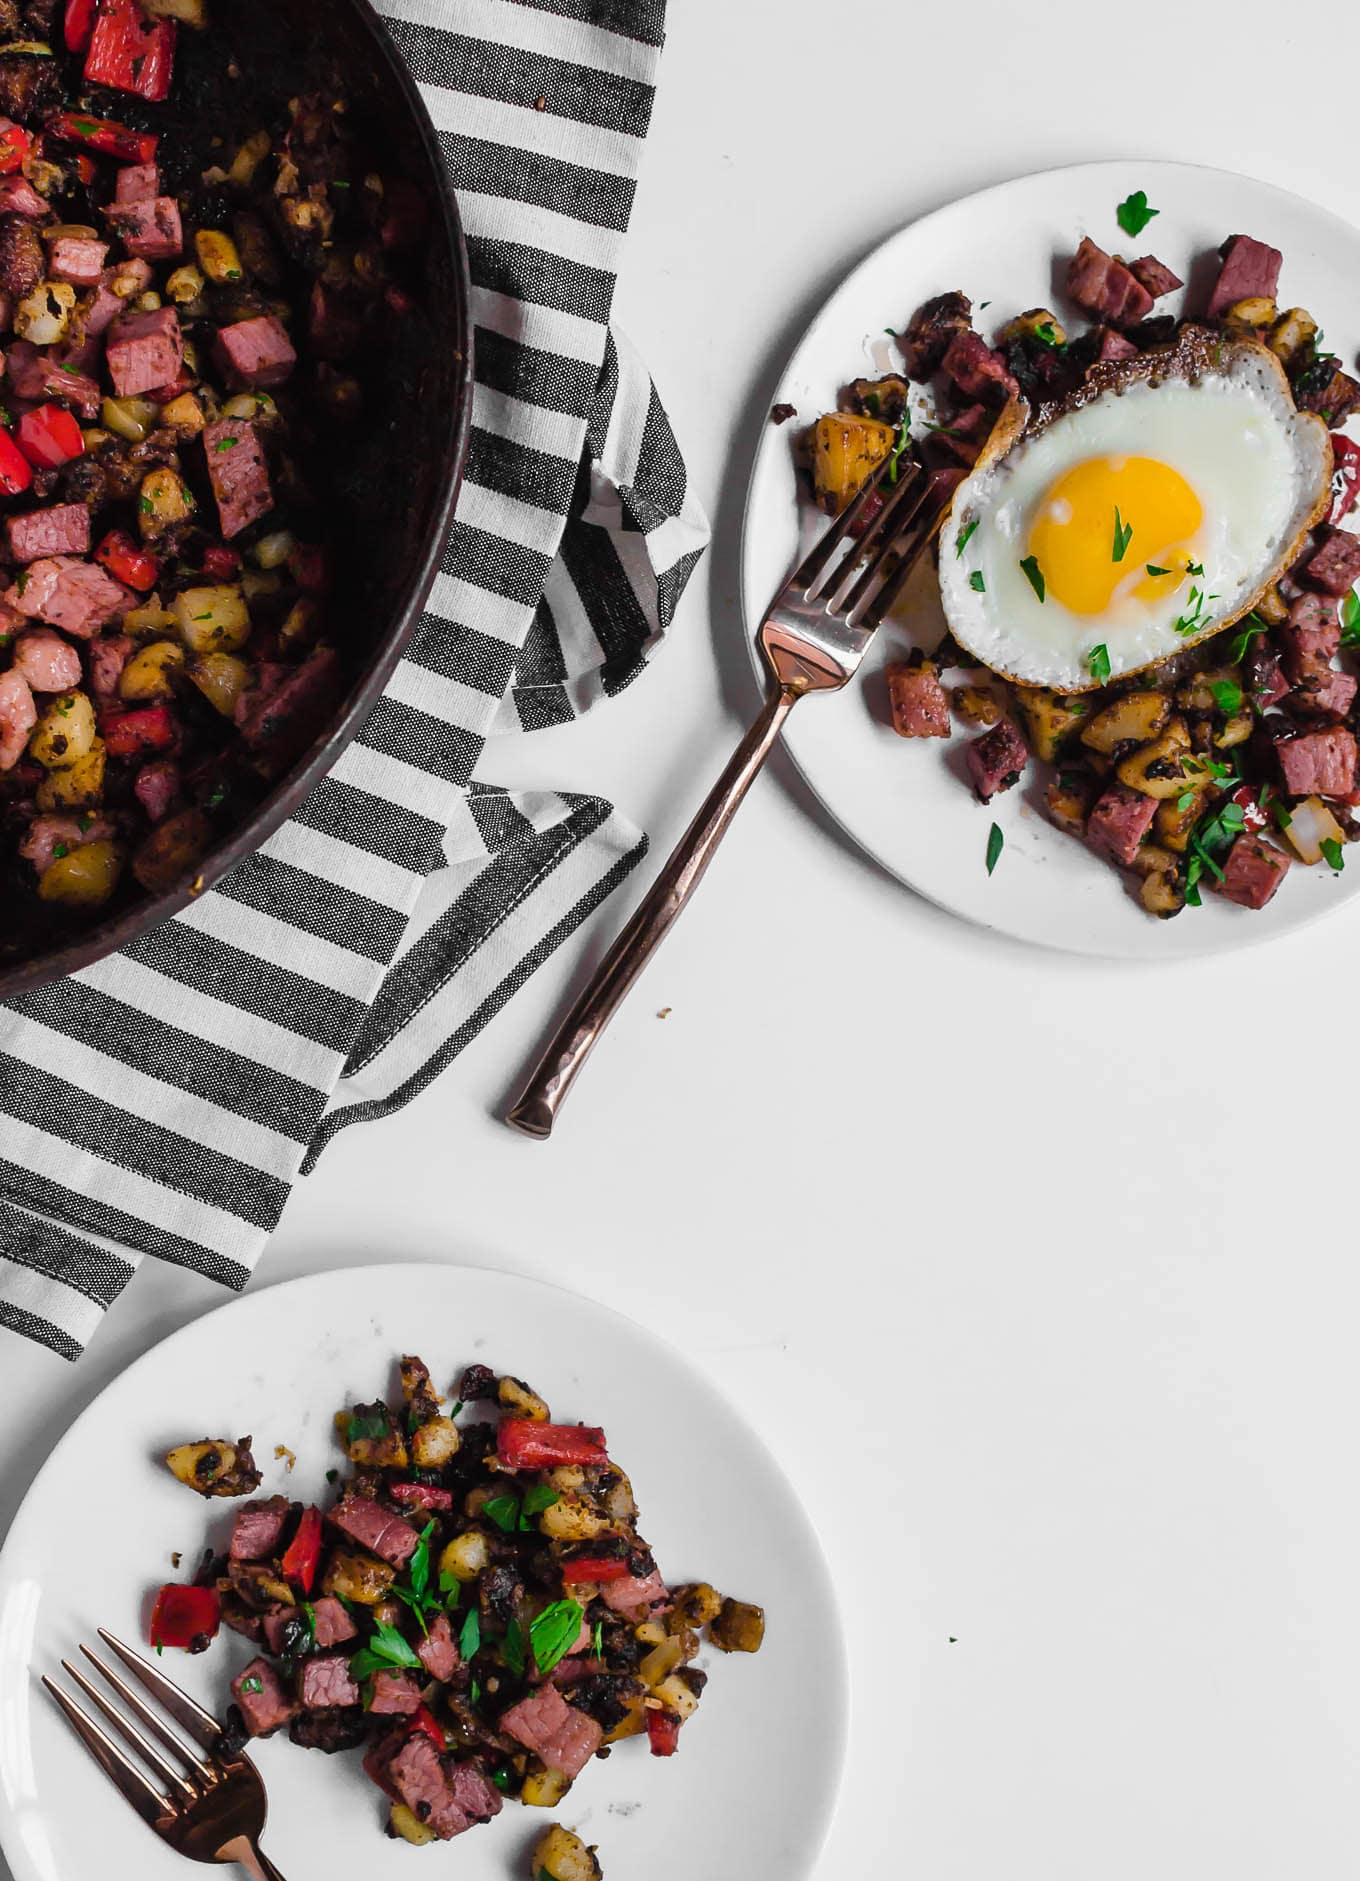 An aerial view of two white plates holding gluten-free corned beef hash, one with an egg on top. Two forks ready to dig in to each plate of food and a large skillet holding the remaining leftover corned beef hash. Everything is sitting on a white table with a grey and white napkin.